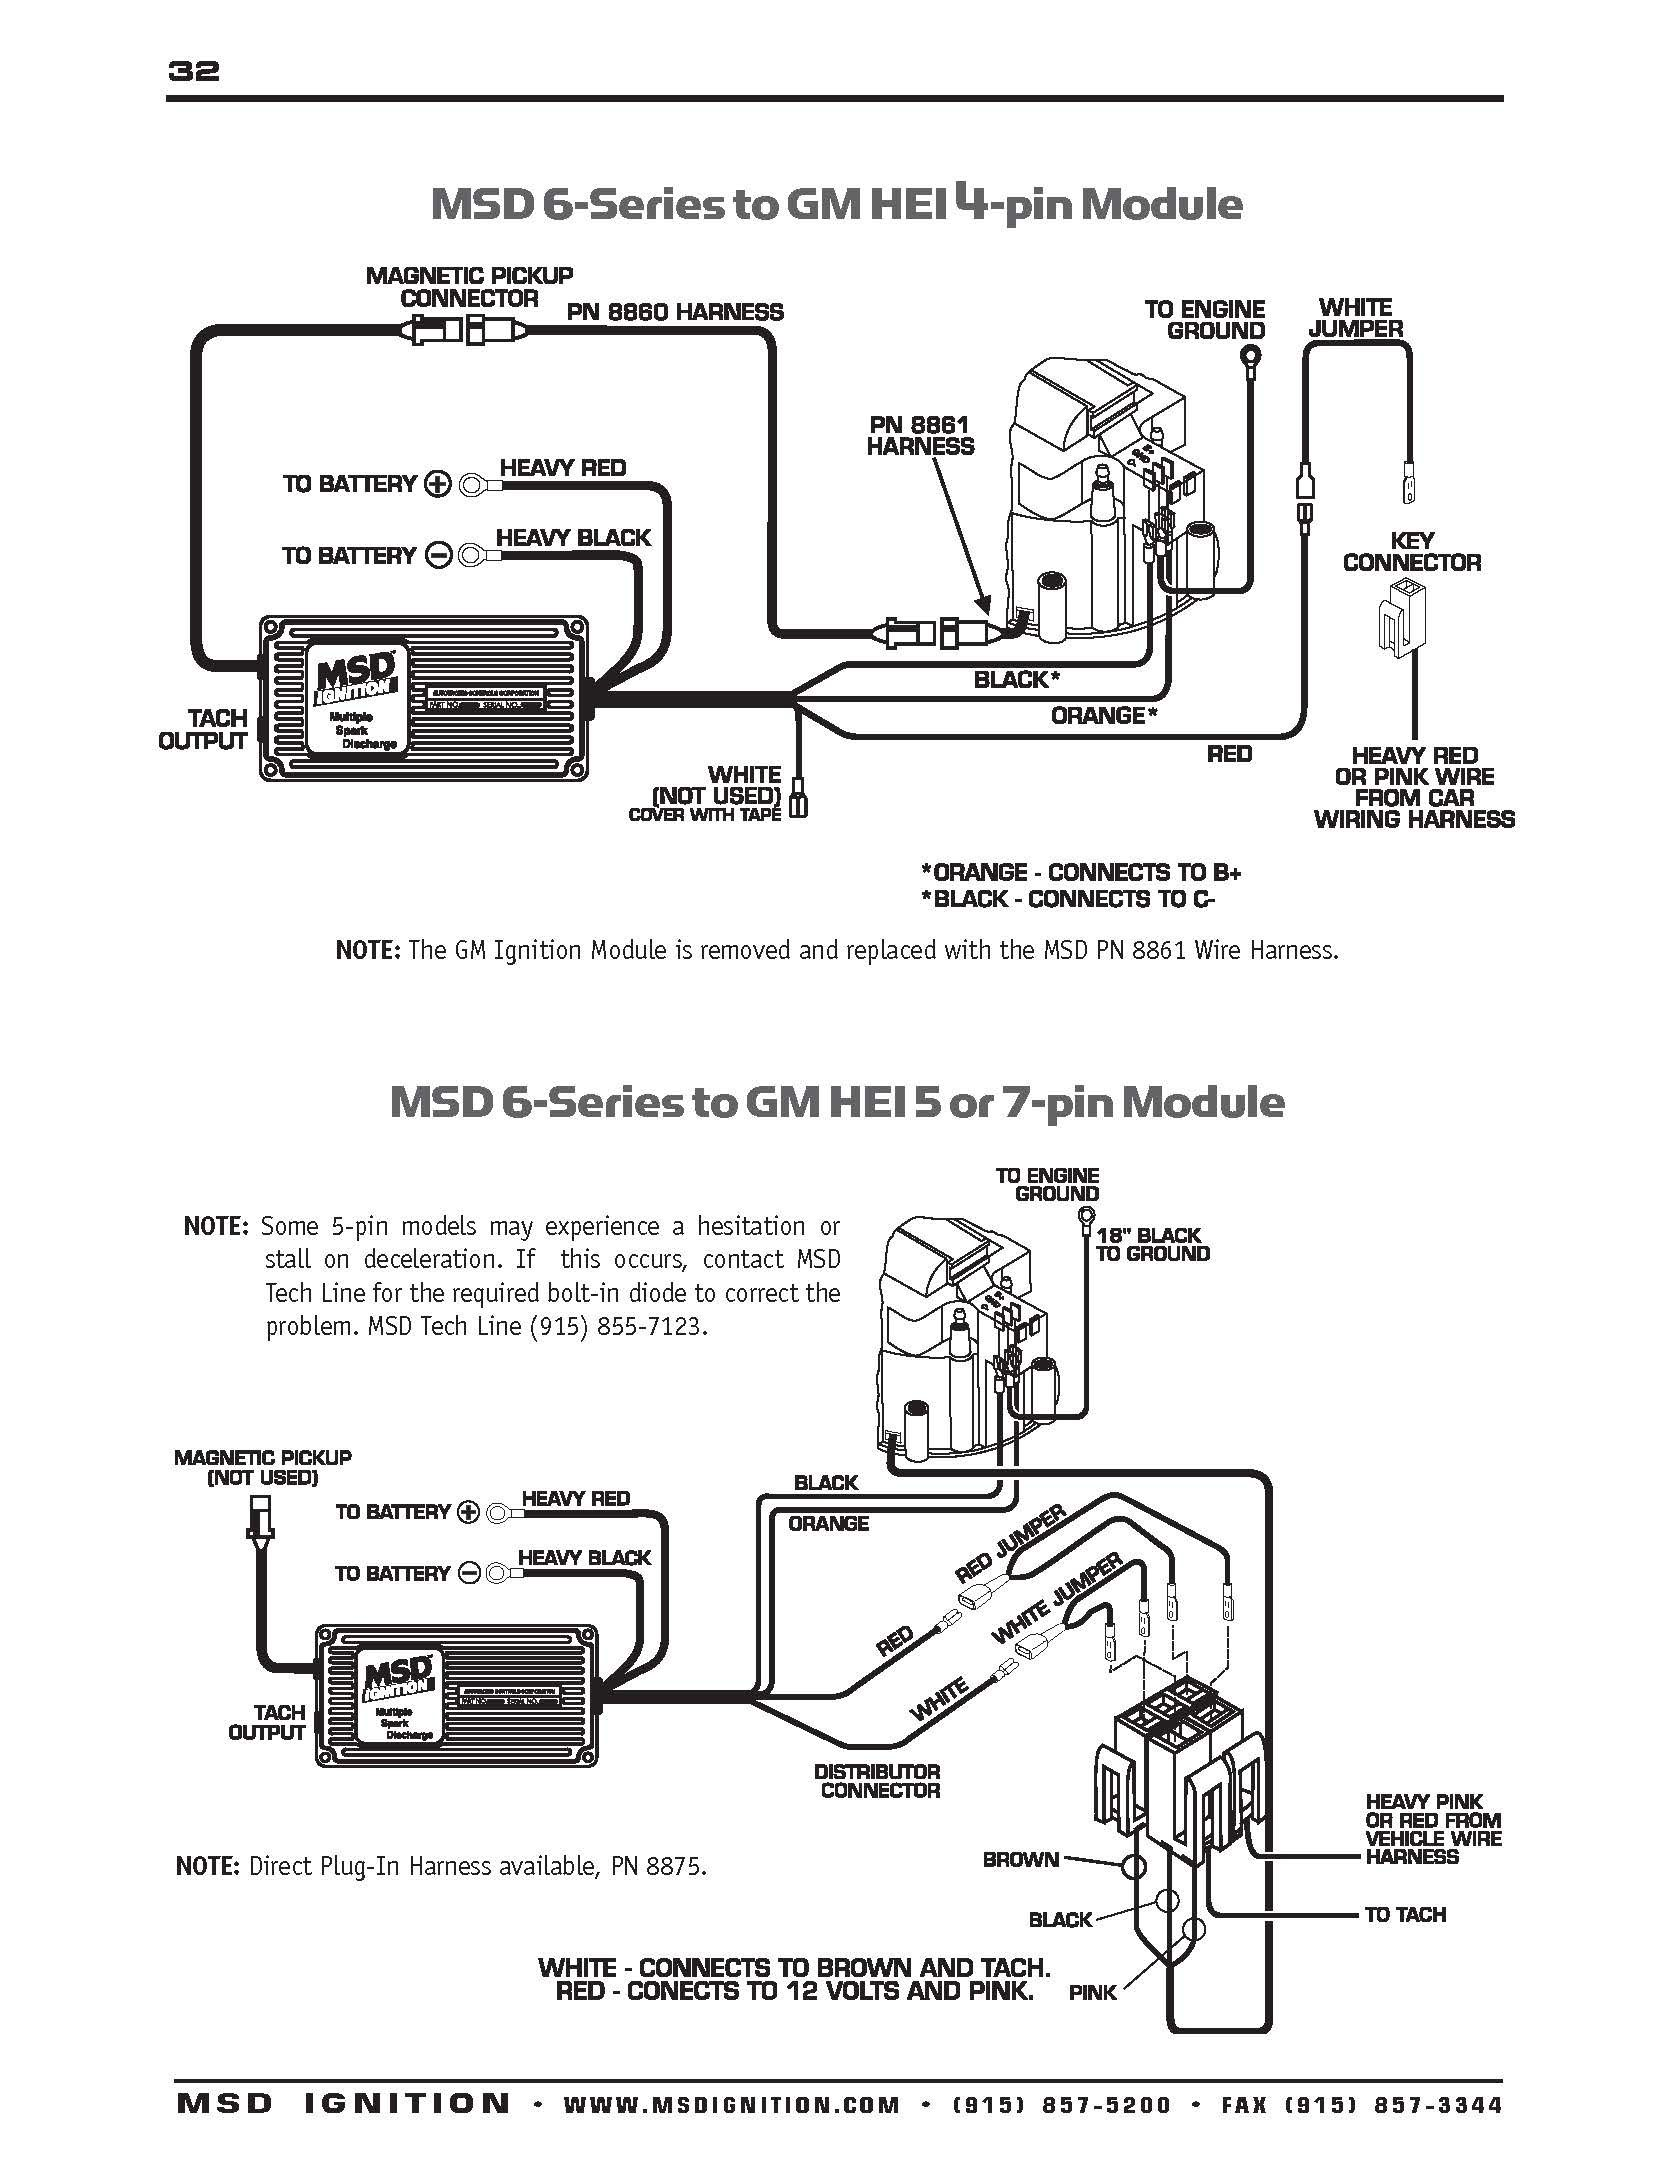 a8a9c5dd0854d22e6aad6bb5dda79a11 msd ignition wiring diagrams 1966 chevelle pinterest engine s&s compression release wiring diagram at mr168.co